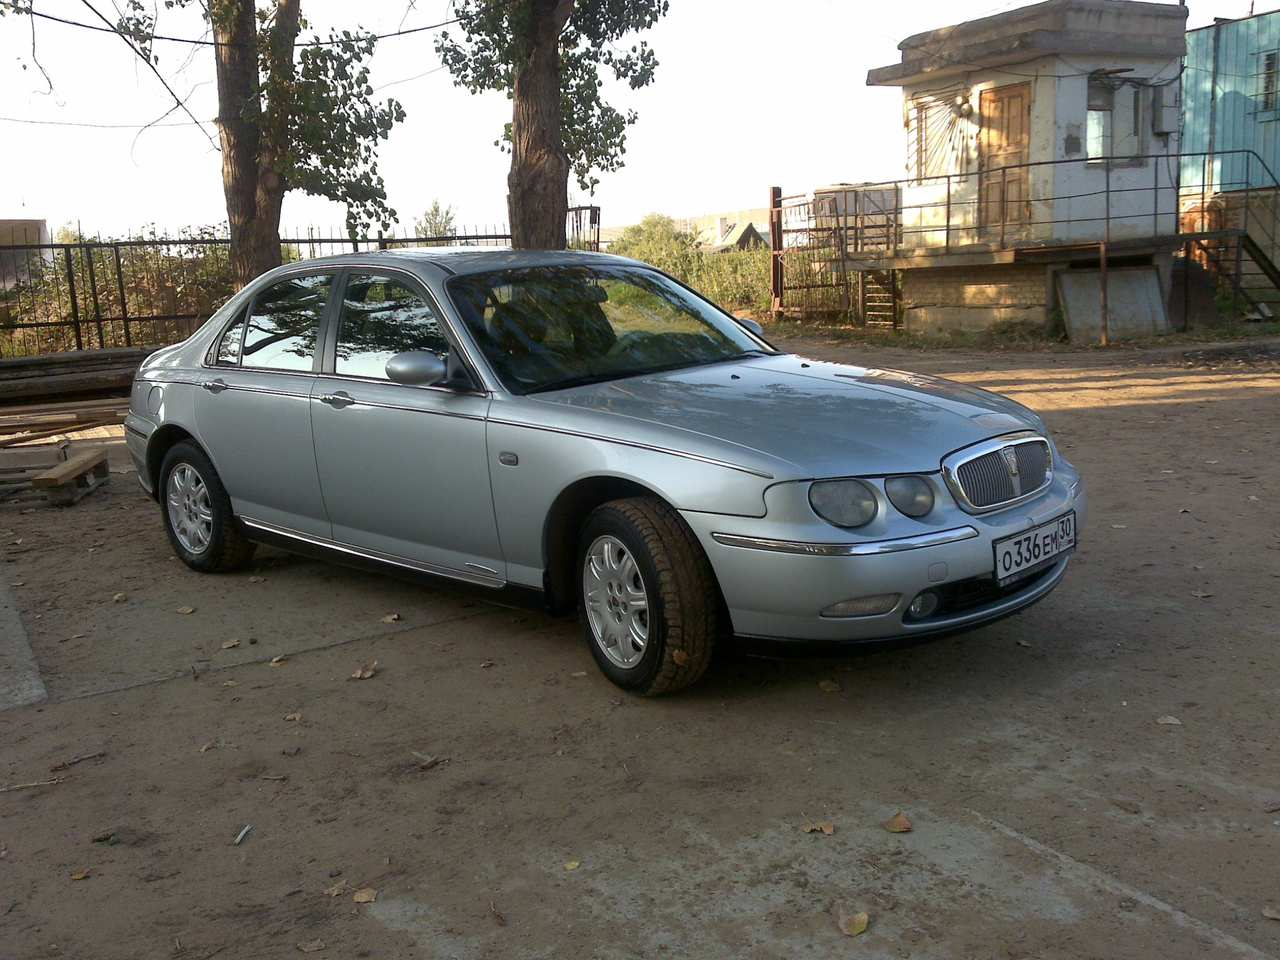 2000 rover 75 wallpapers gasoline ff manual for sale. Black Bedroom Furniture Sets. Home Design Ideas